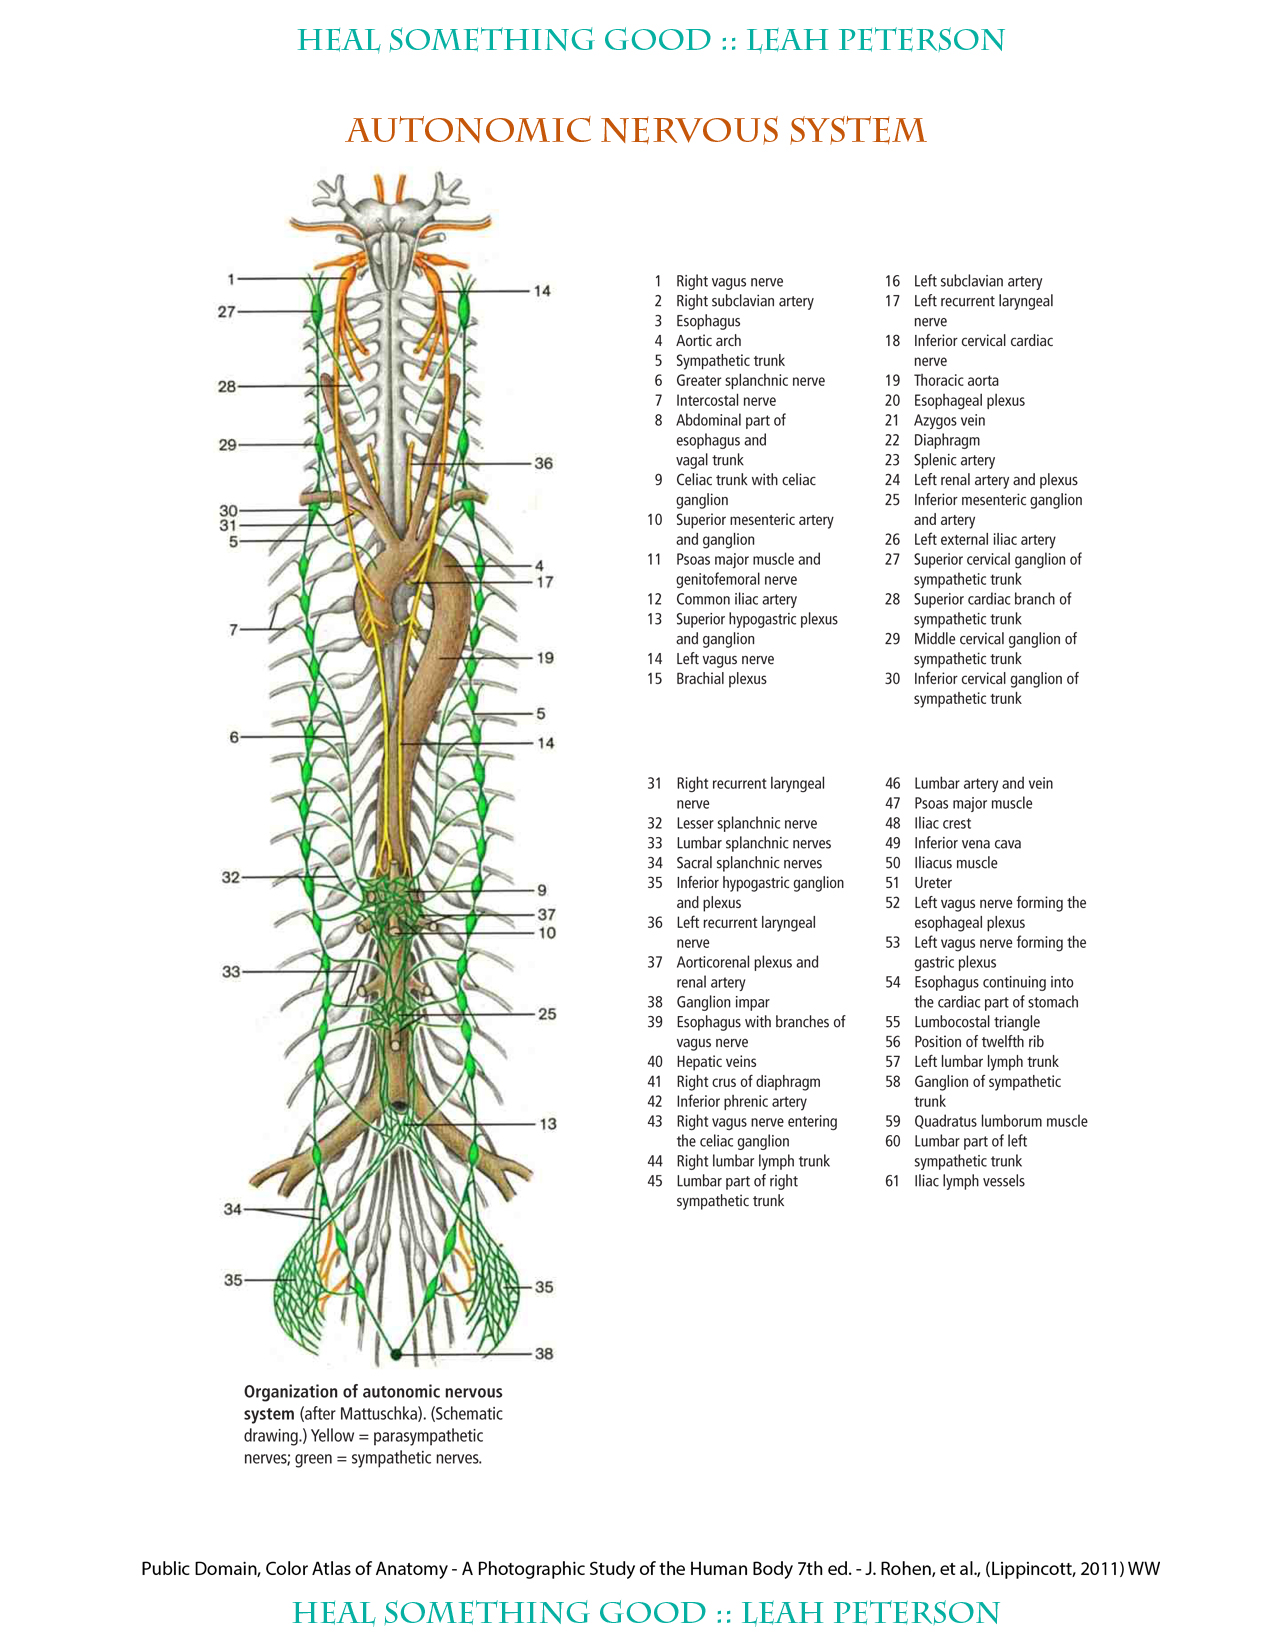 Chart Autonomic Nervous System Heal Something Good